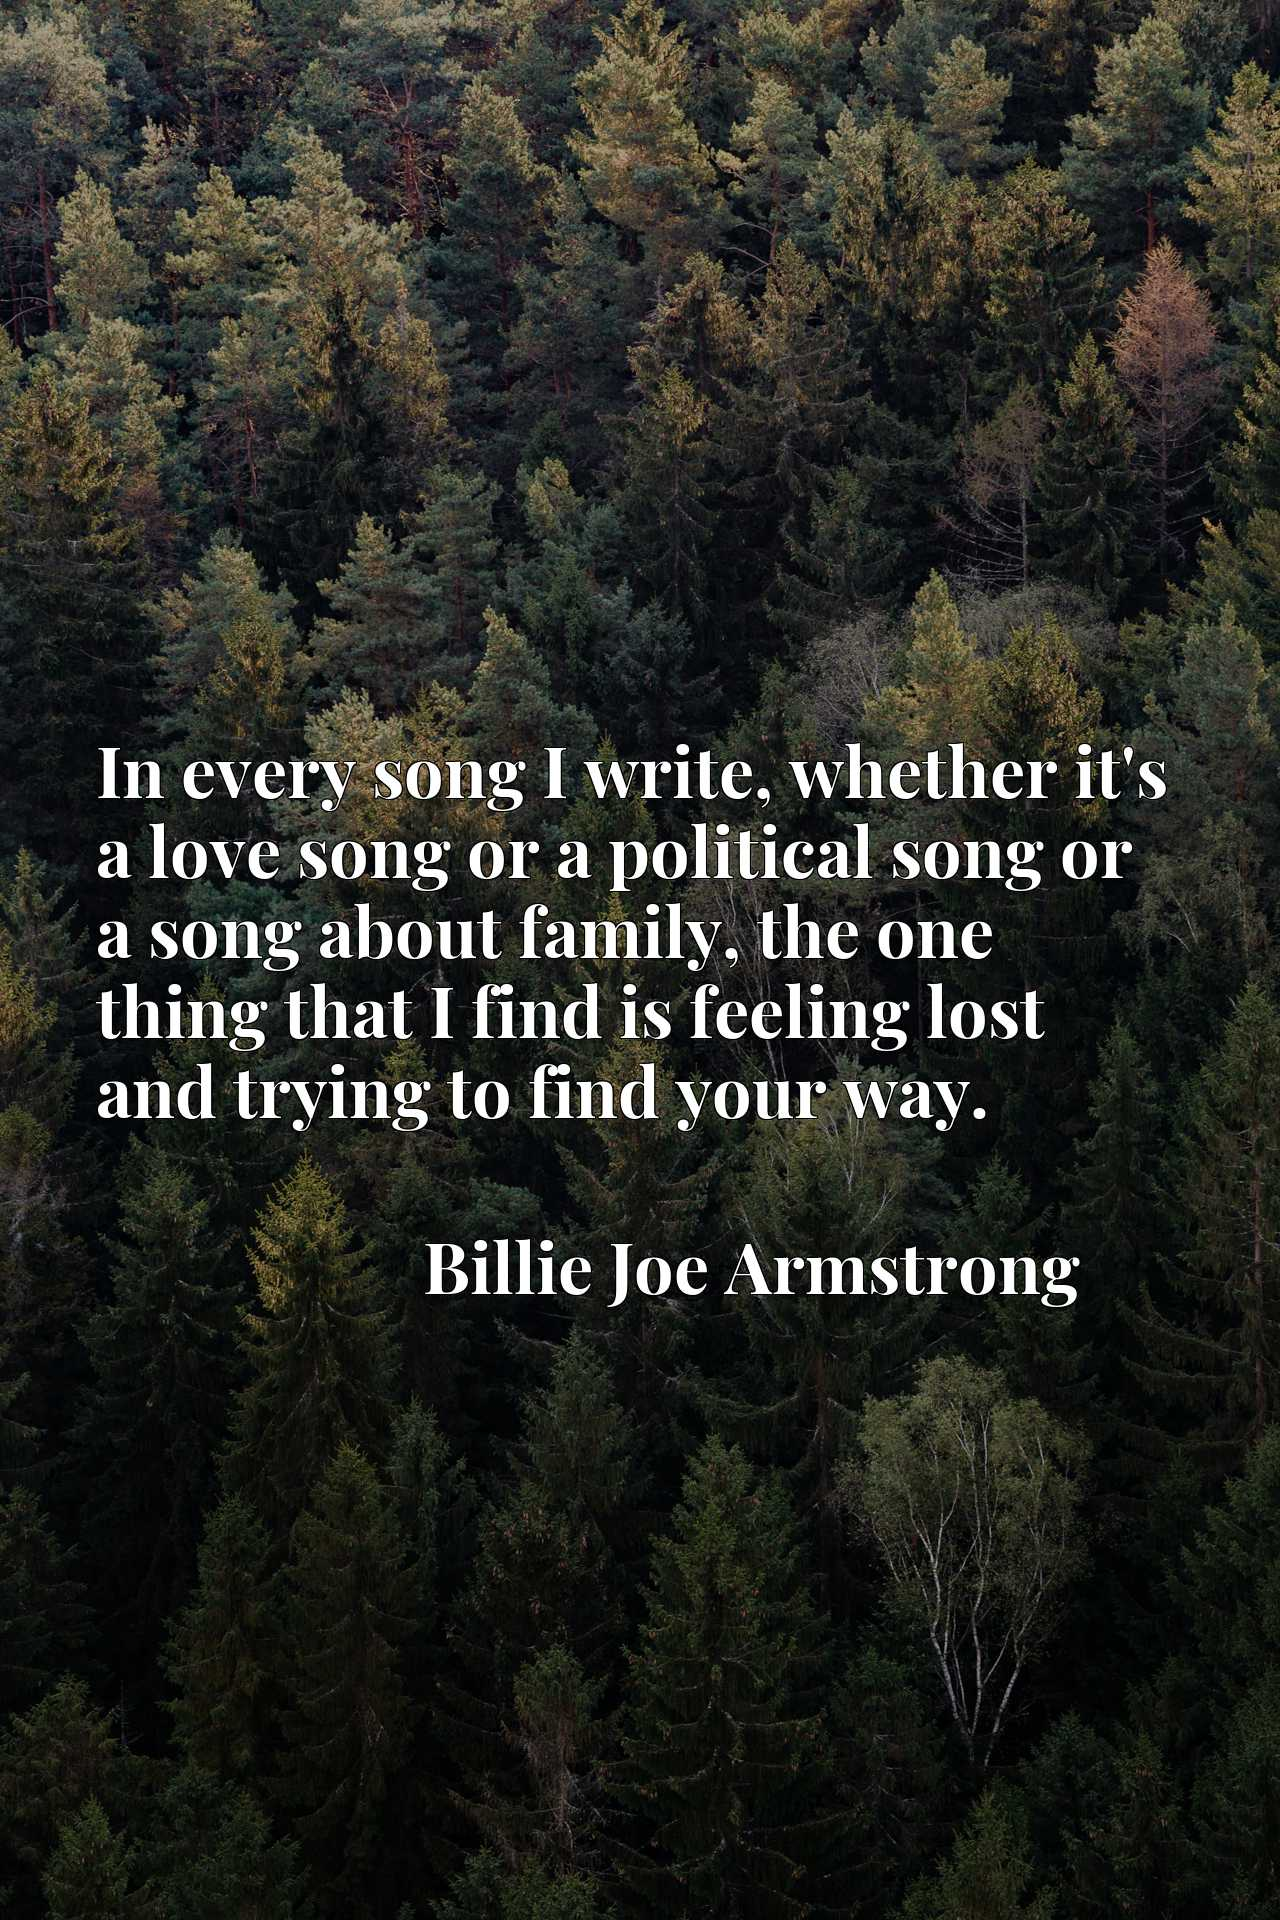 In every song I write, whether it's a love song or a political song or a song about family, the one thing that I find is feeling lost and trying to find your way.